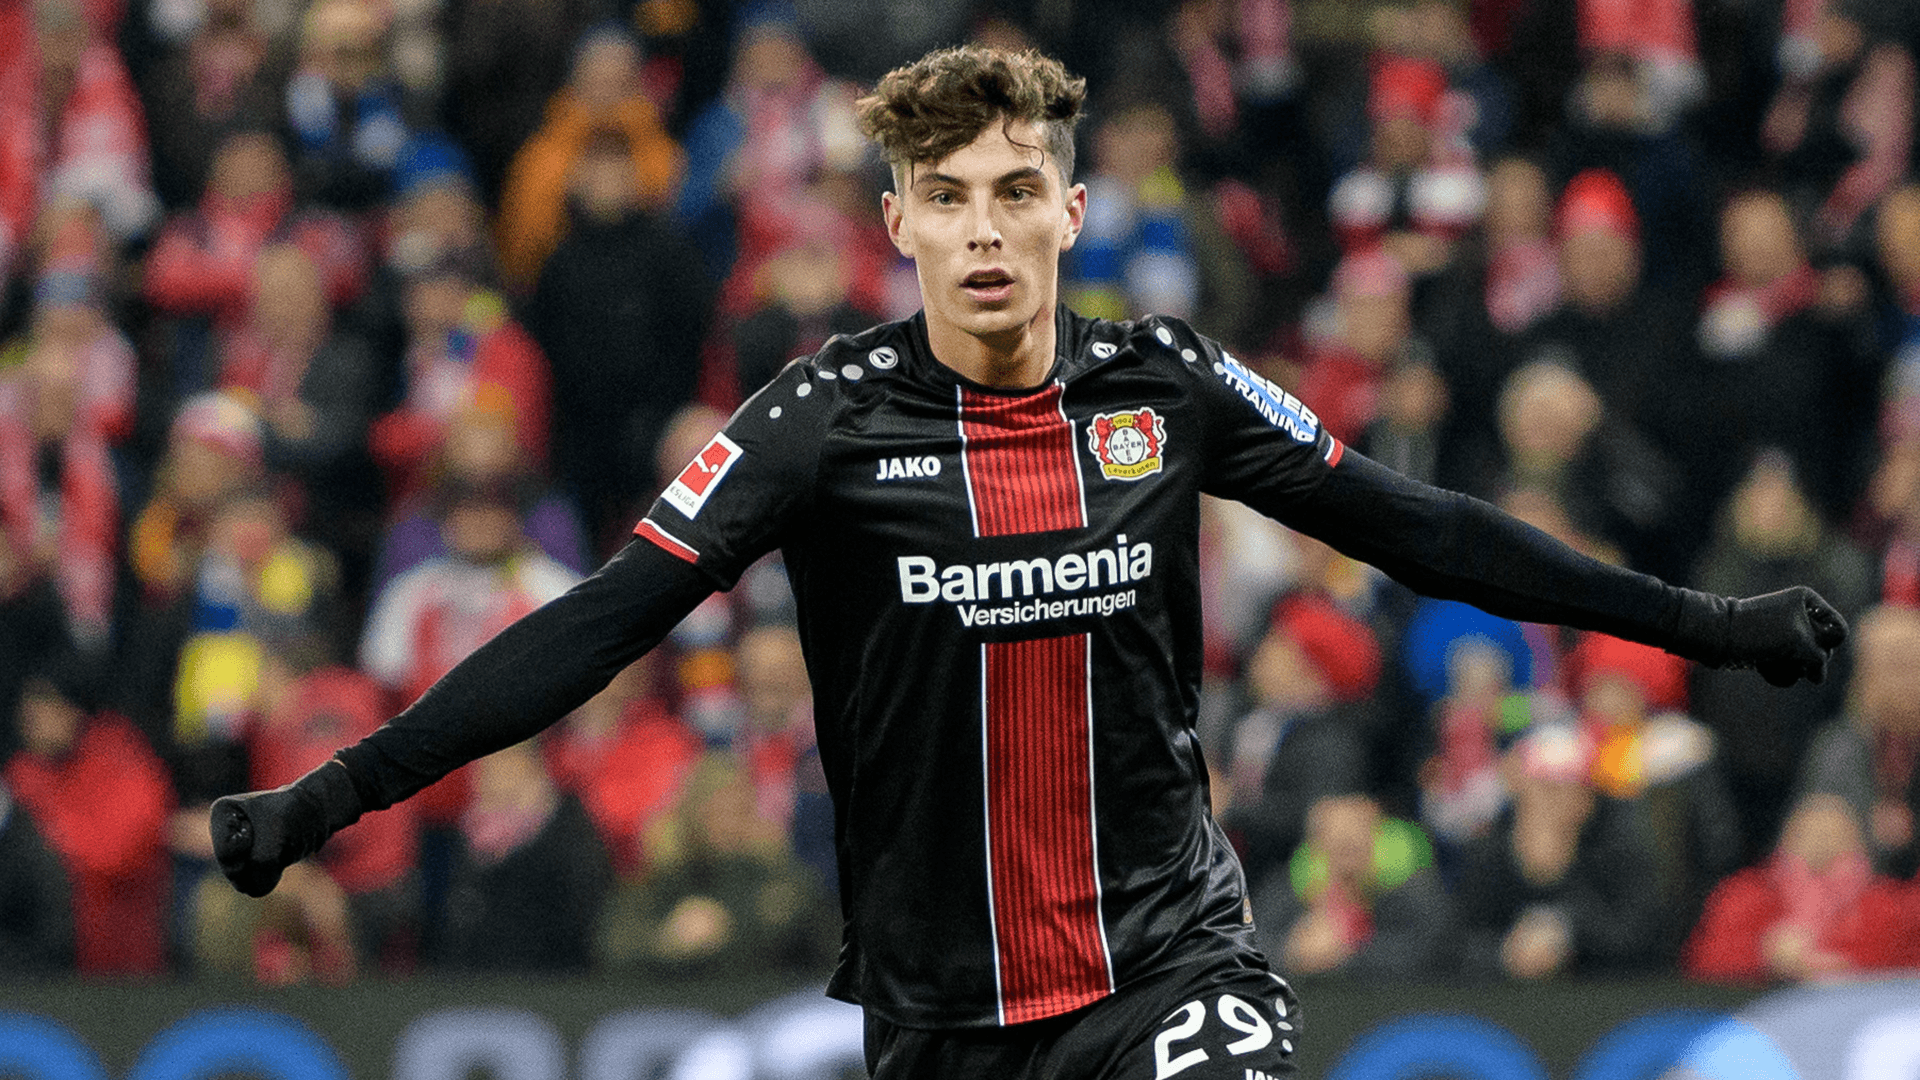 Kai Havertz Wallpapers HD